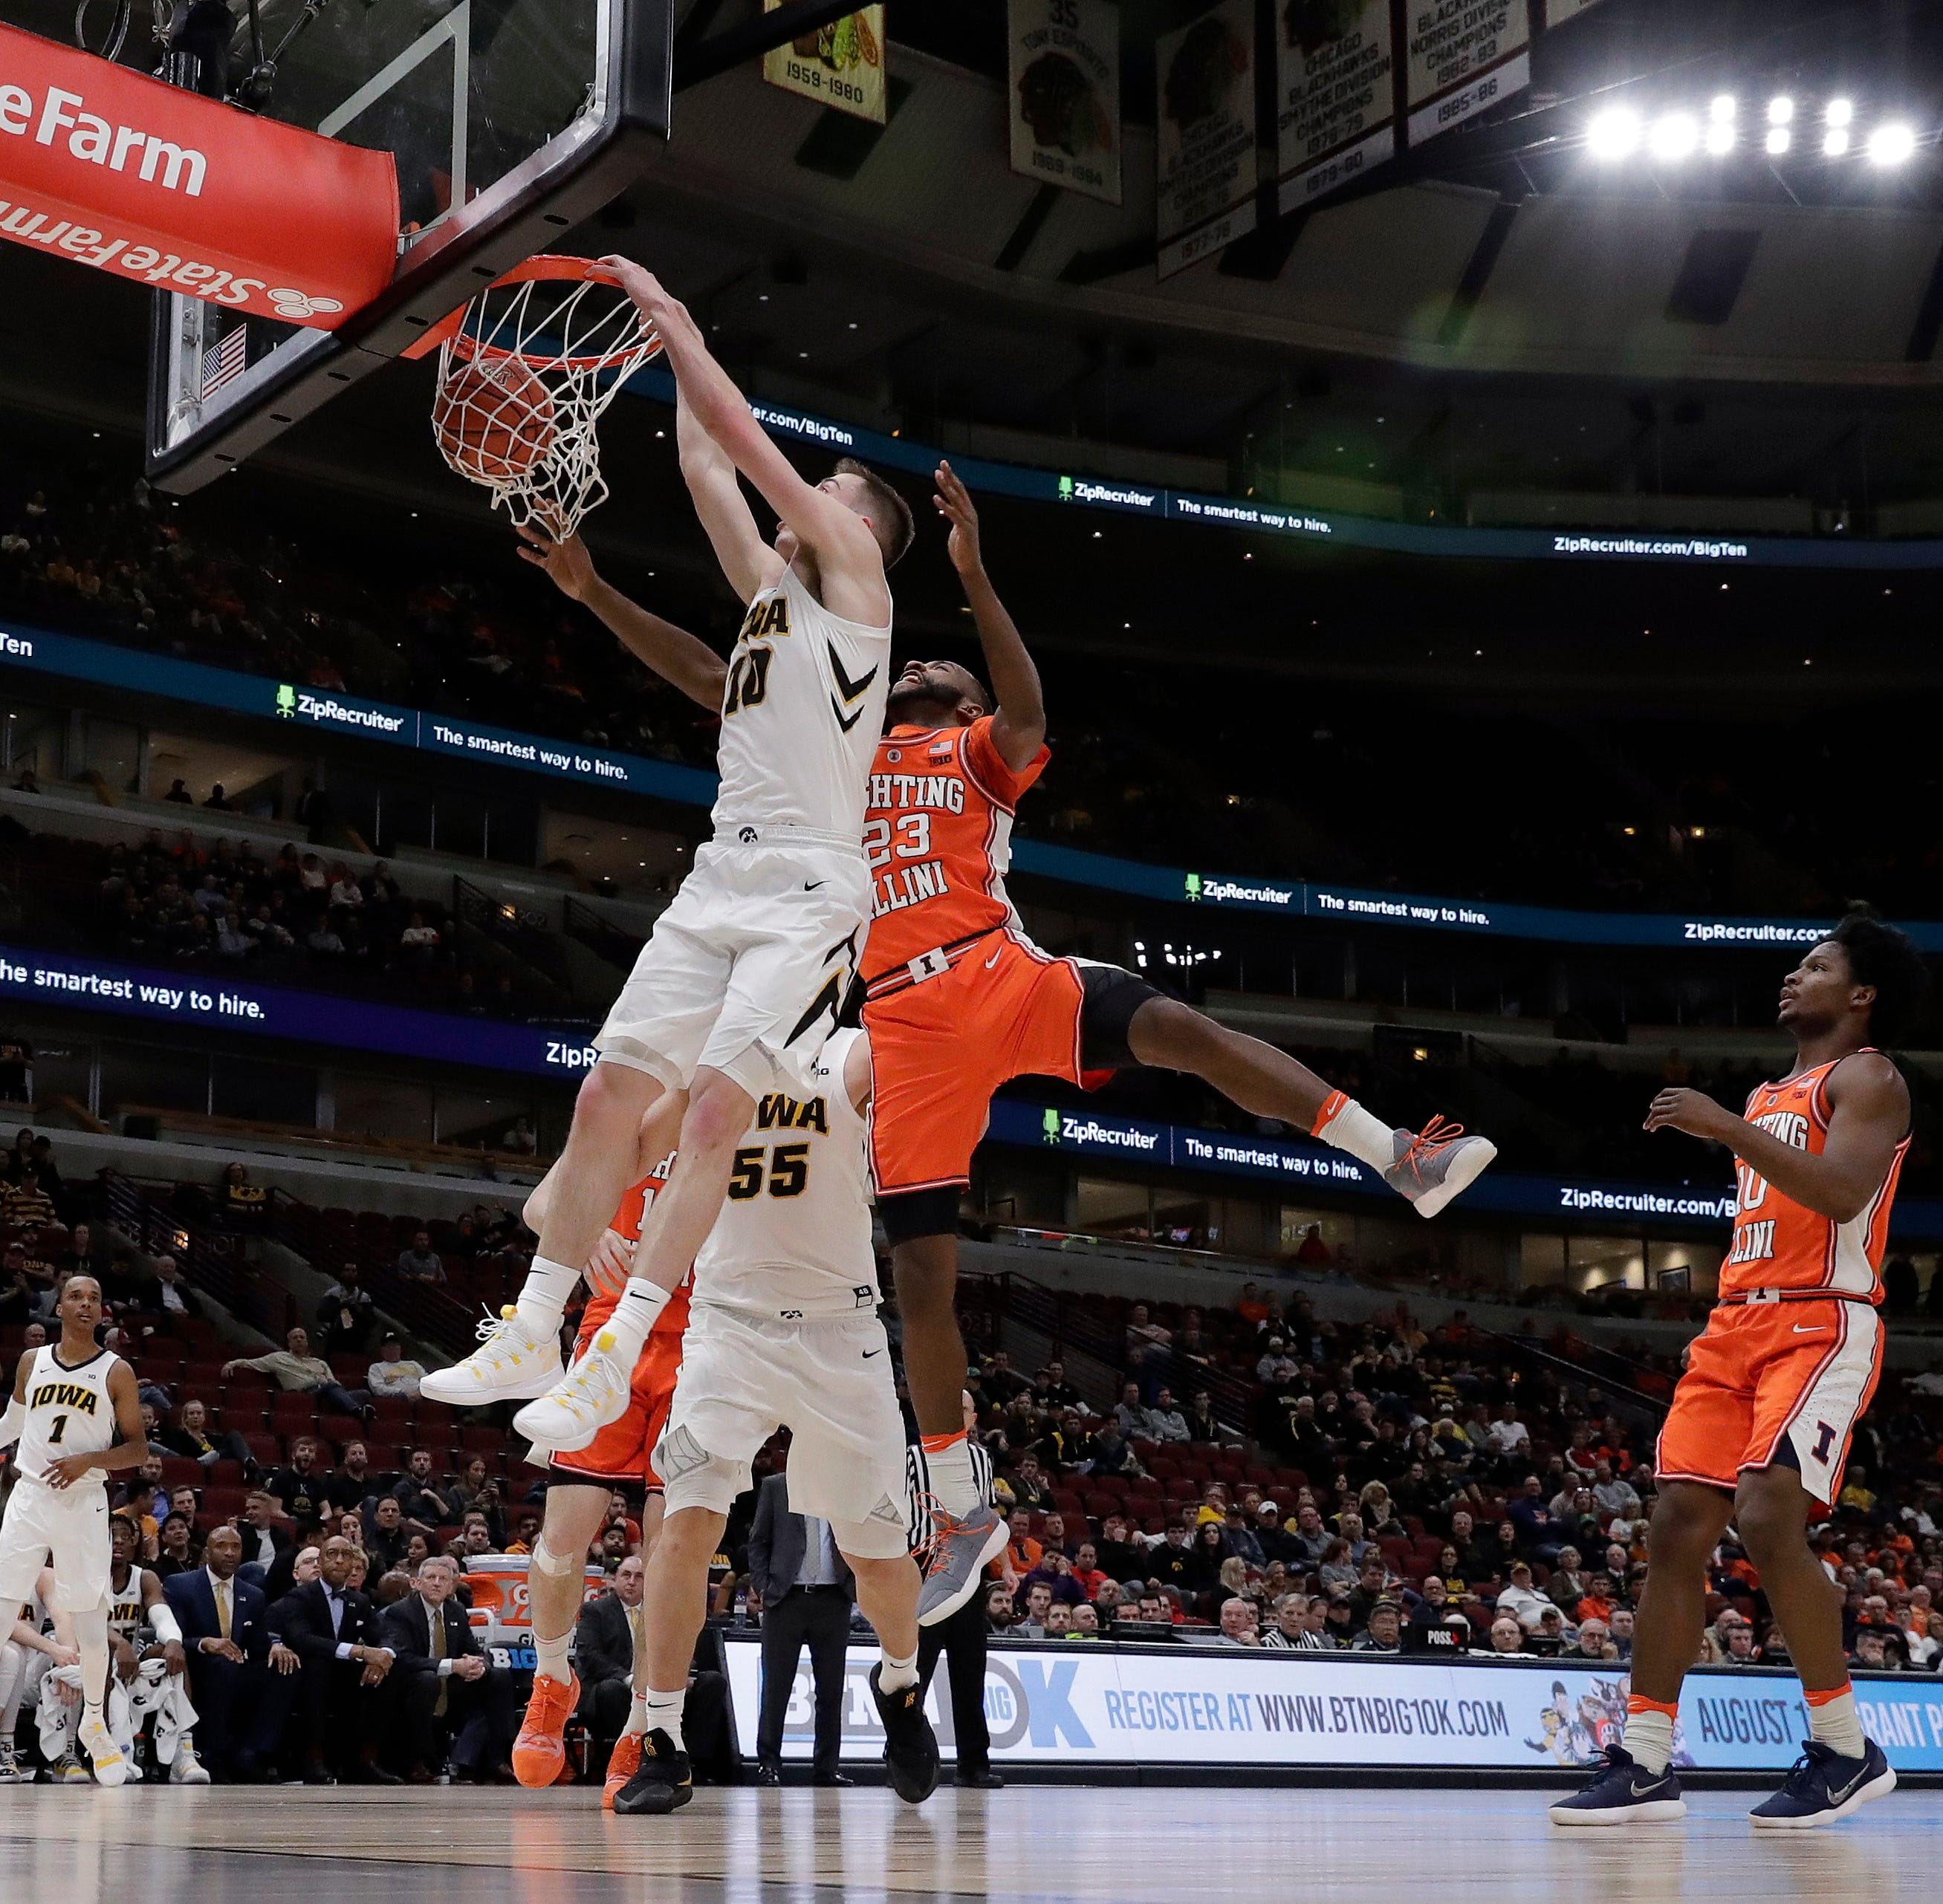 Freshman Joe Wieskamp's energy gets Hawkeyes rolling in tournament win over Illinois